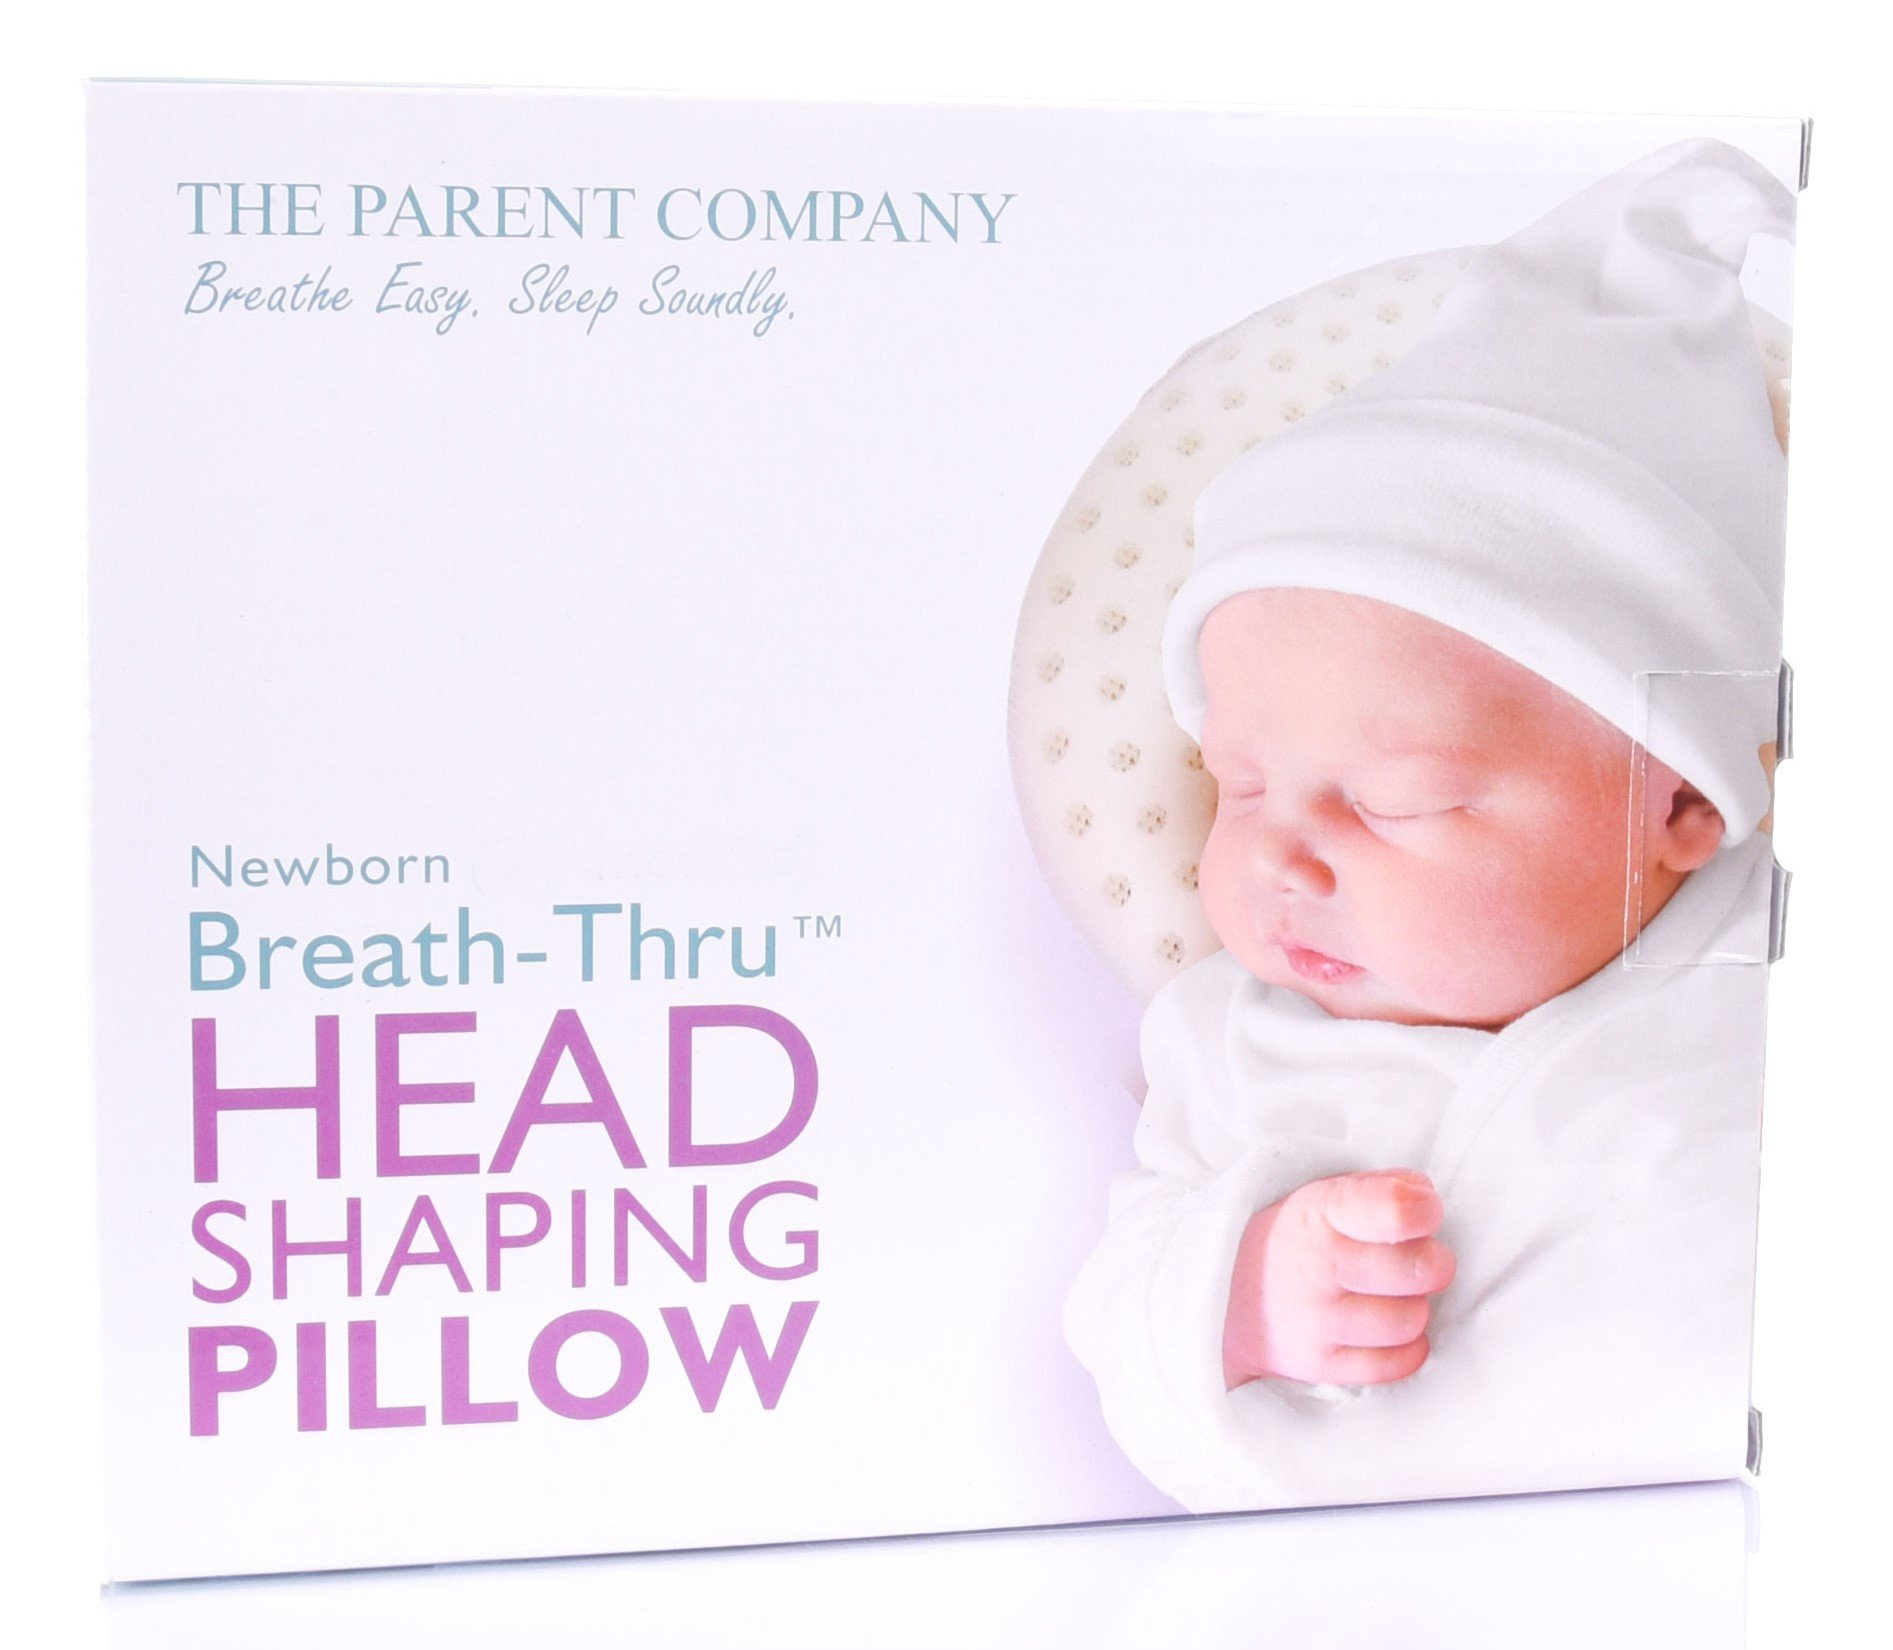 Newborn (Premie) Baby Head Shaping Pillow | Breathe-Thru Cushion for Head Support & Flat Head Syndrome (Positional Plagiocephaly) Prevention | 13-17 Inch Head Circumference